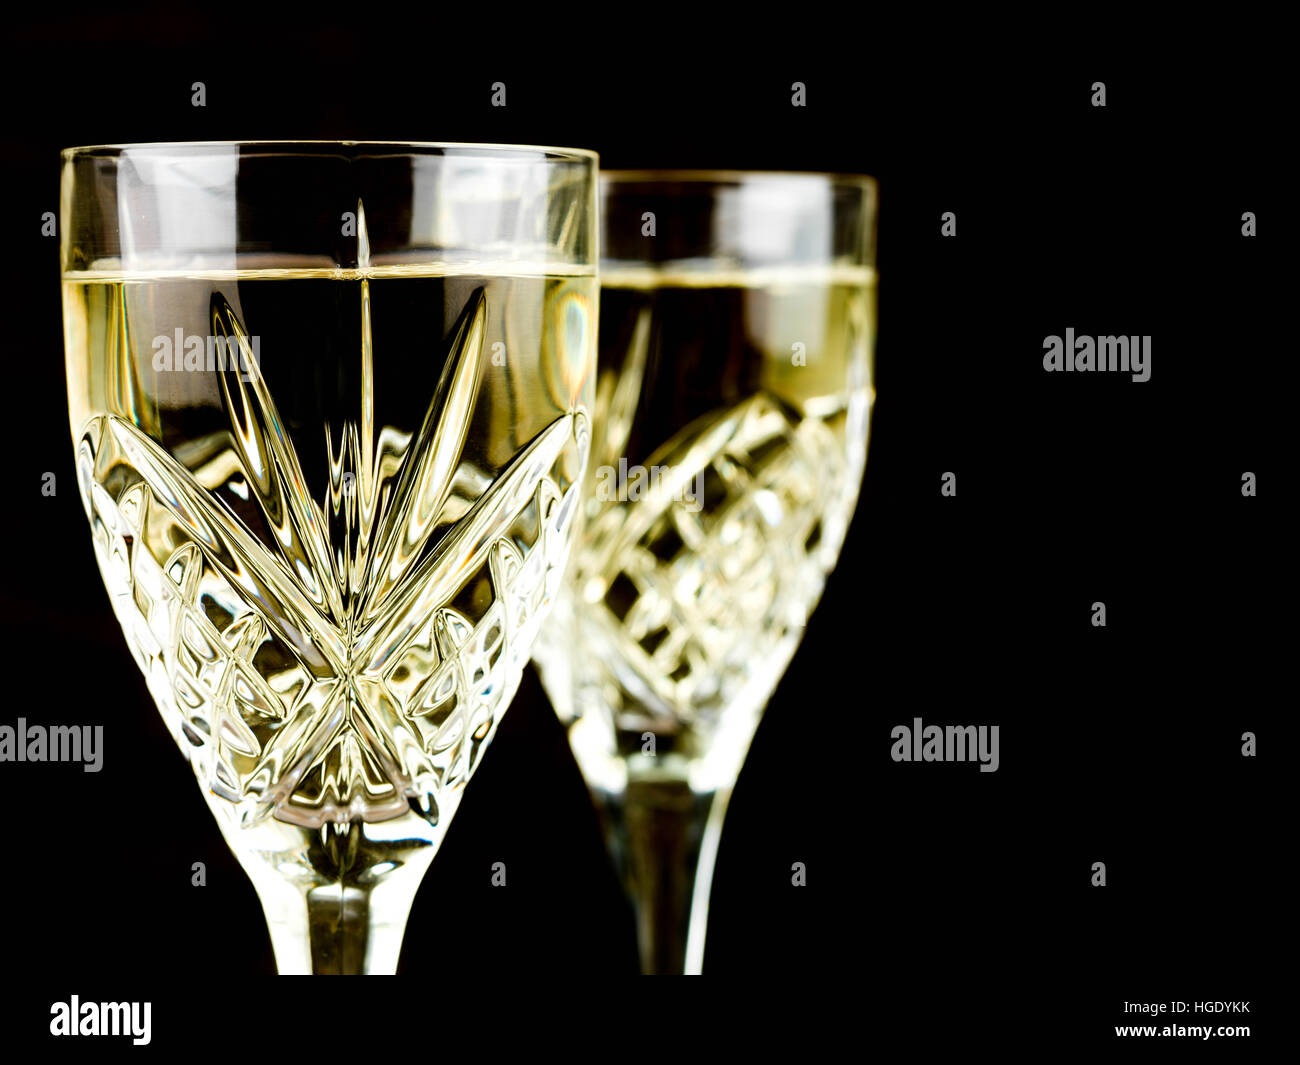 Chilled White Wine in a Cut Crystal Glass Against a Black Background Stock Photo